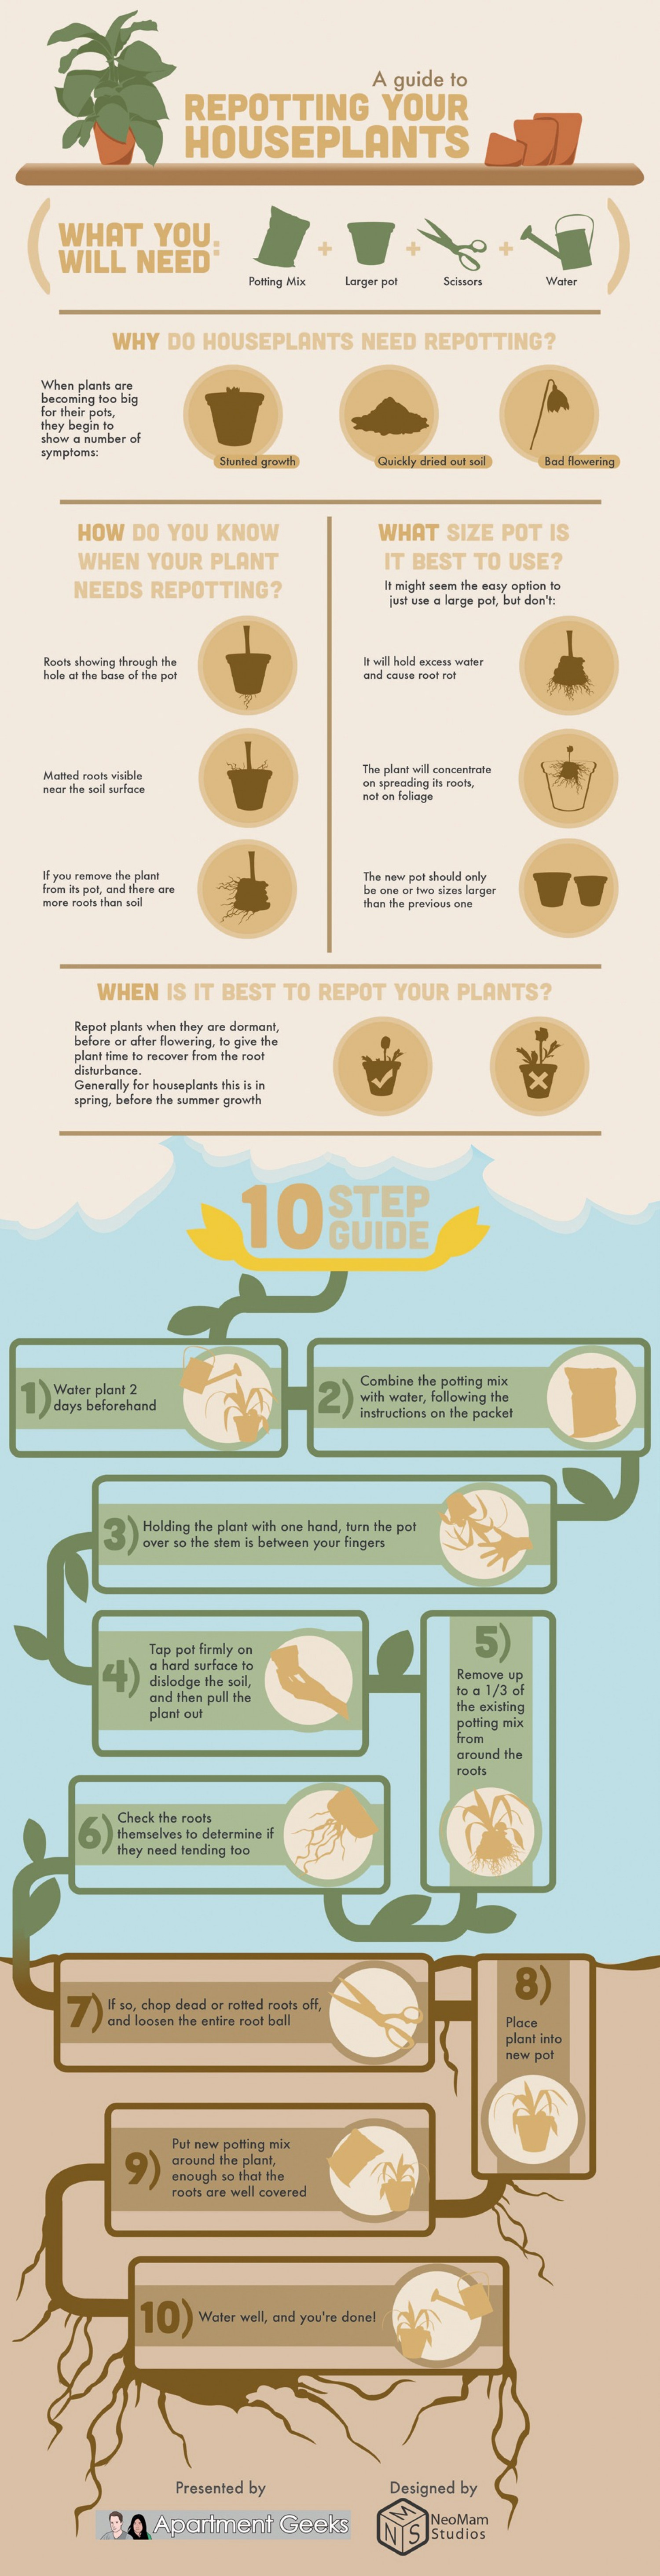 A Guide To Repotting Your Houseplants  Infographic